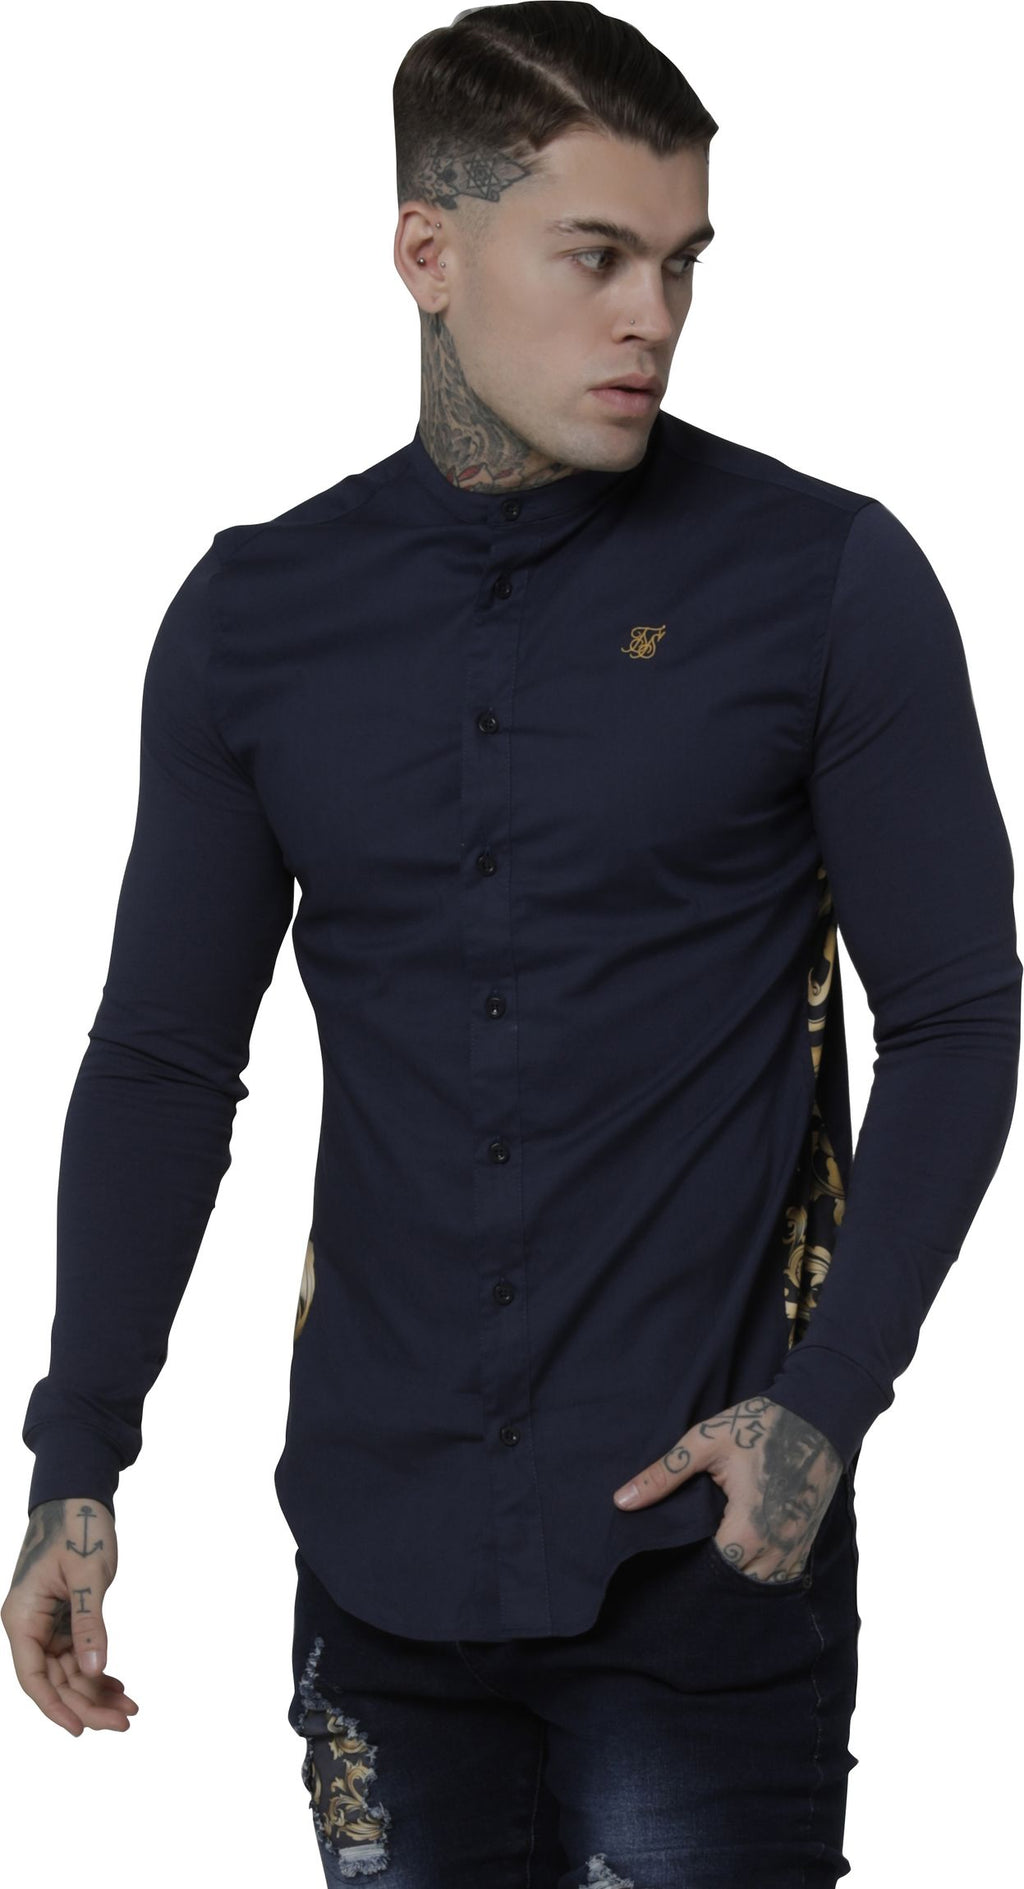 Sik Silk Royal Venetian Muscle Fit Grandad Long Sleeve Shirt Navy